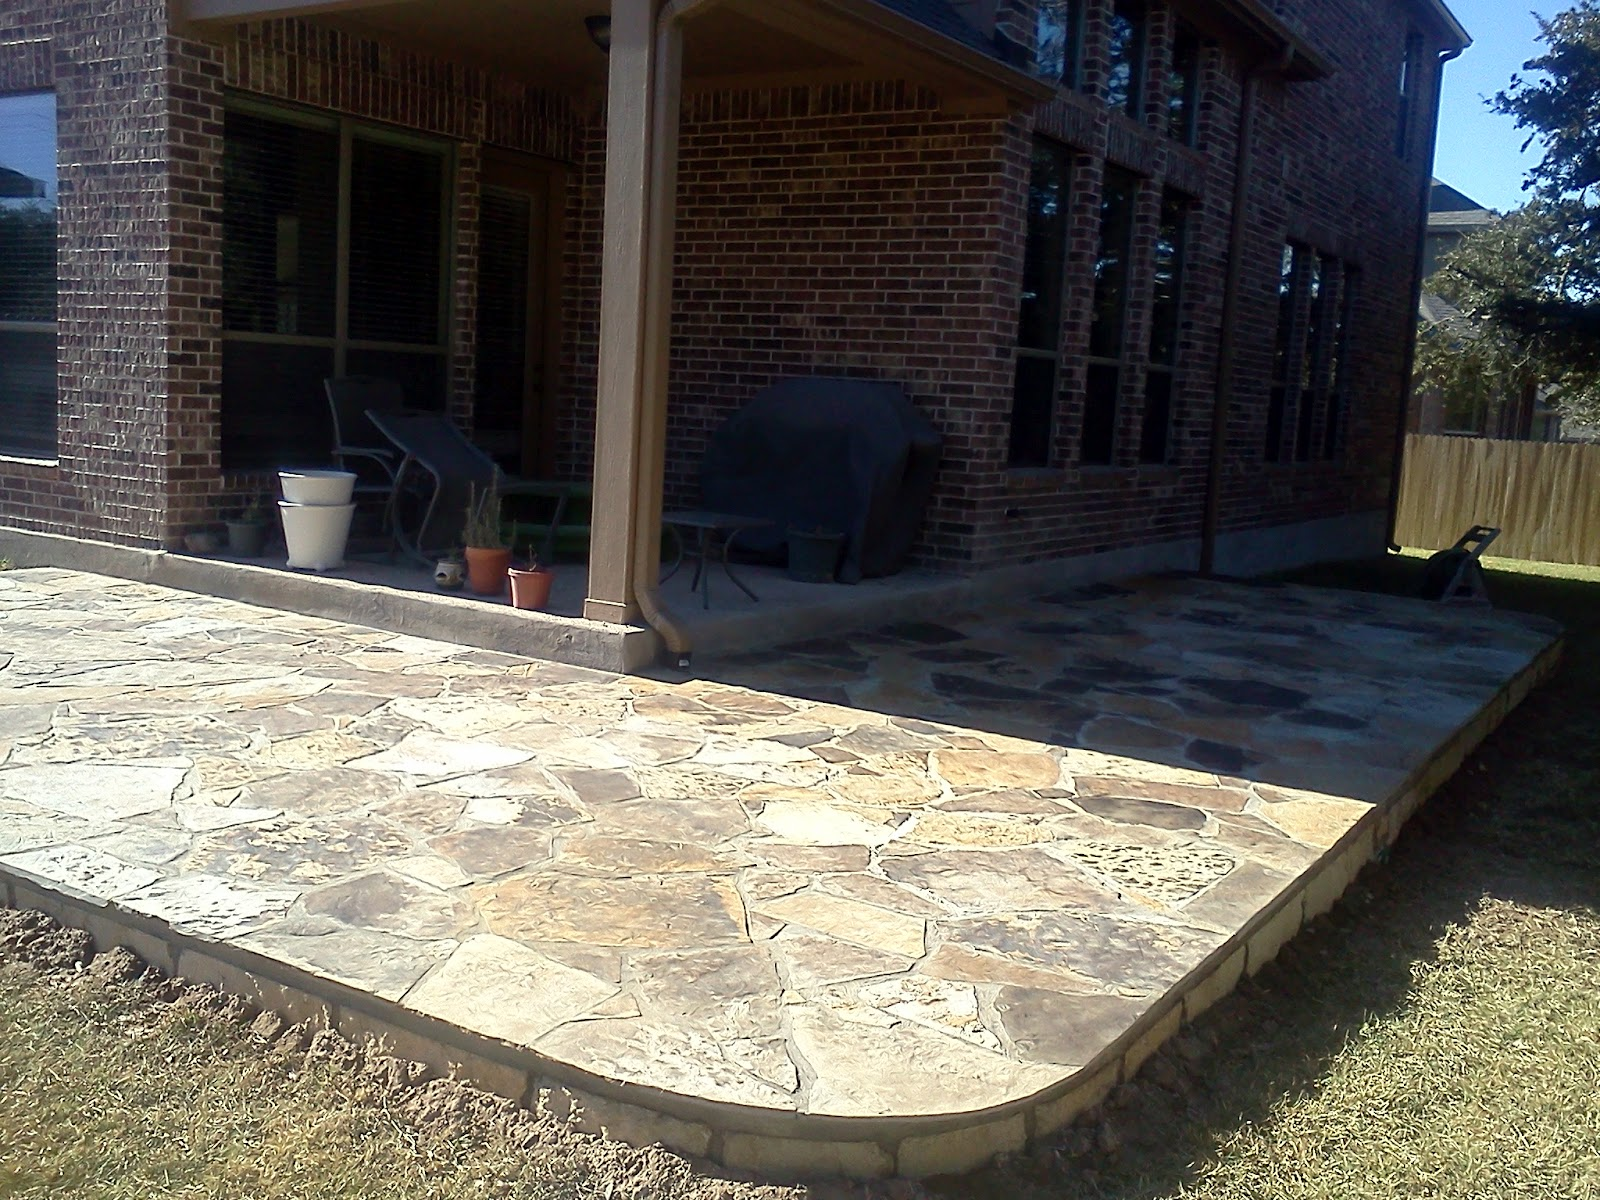 Austin Stone Patio - Home Design Inspiration, Ideas and Pictures